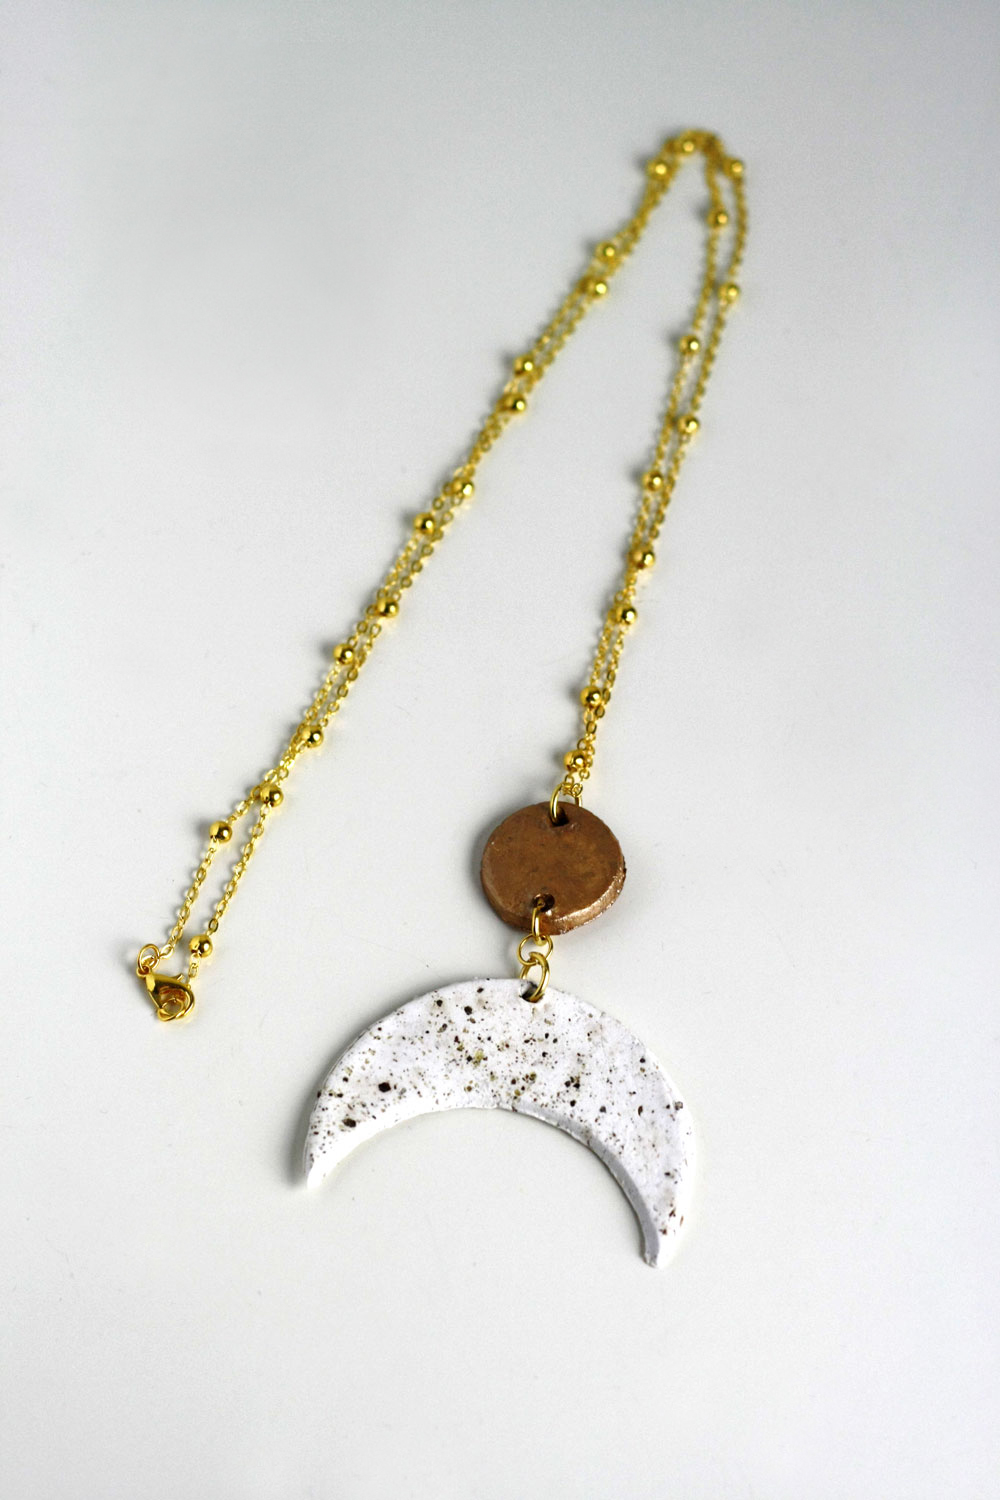 DIY - Crescent moon necklace